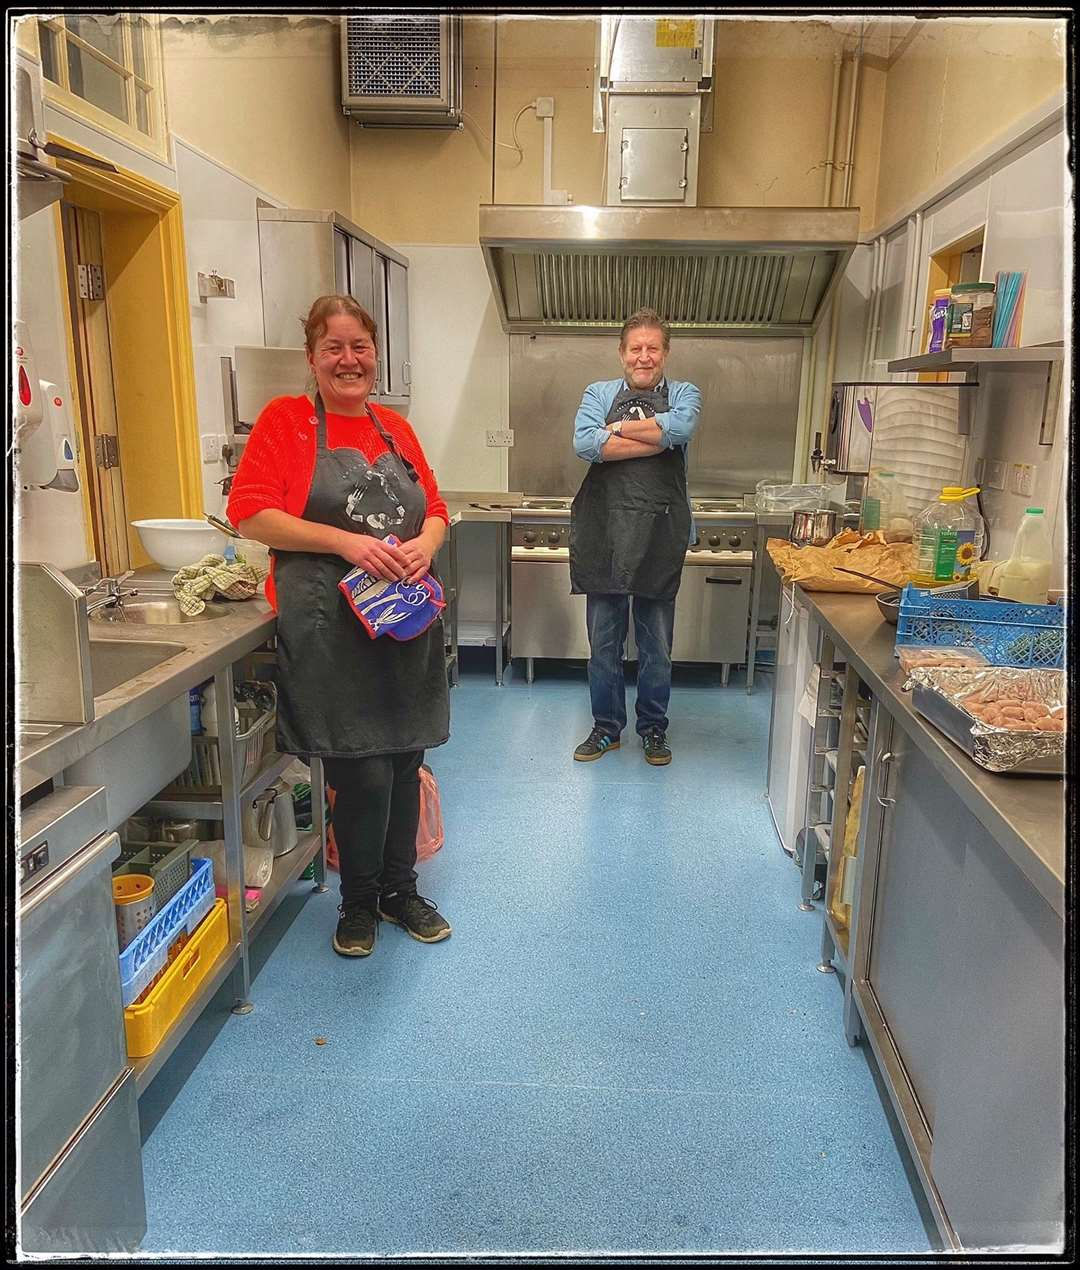 Volunteer cooks Julie White and Paul Dunn cooking takeaway meals in the newly renovated kitchen